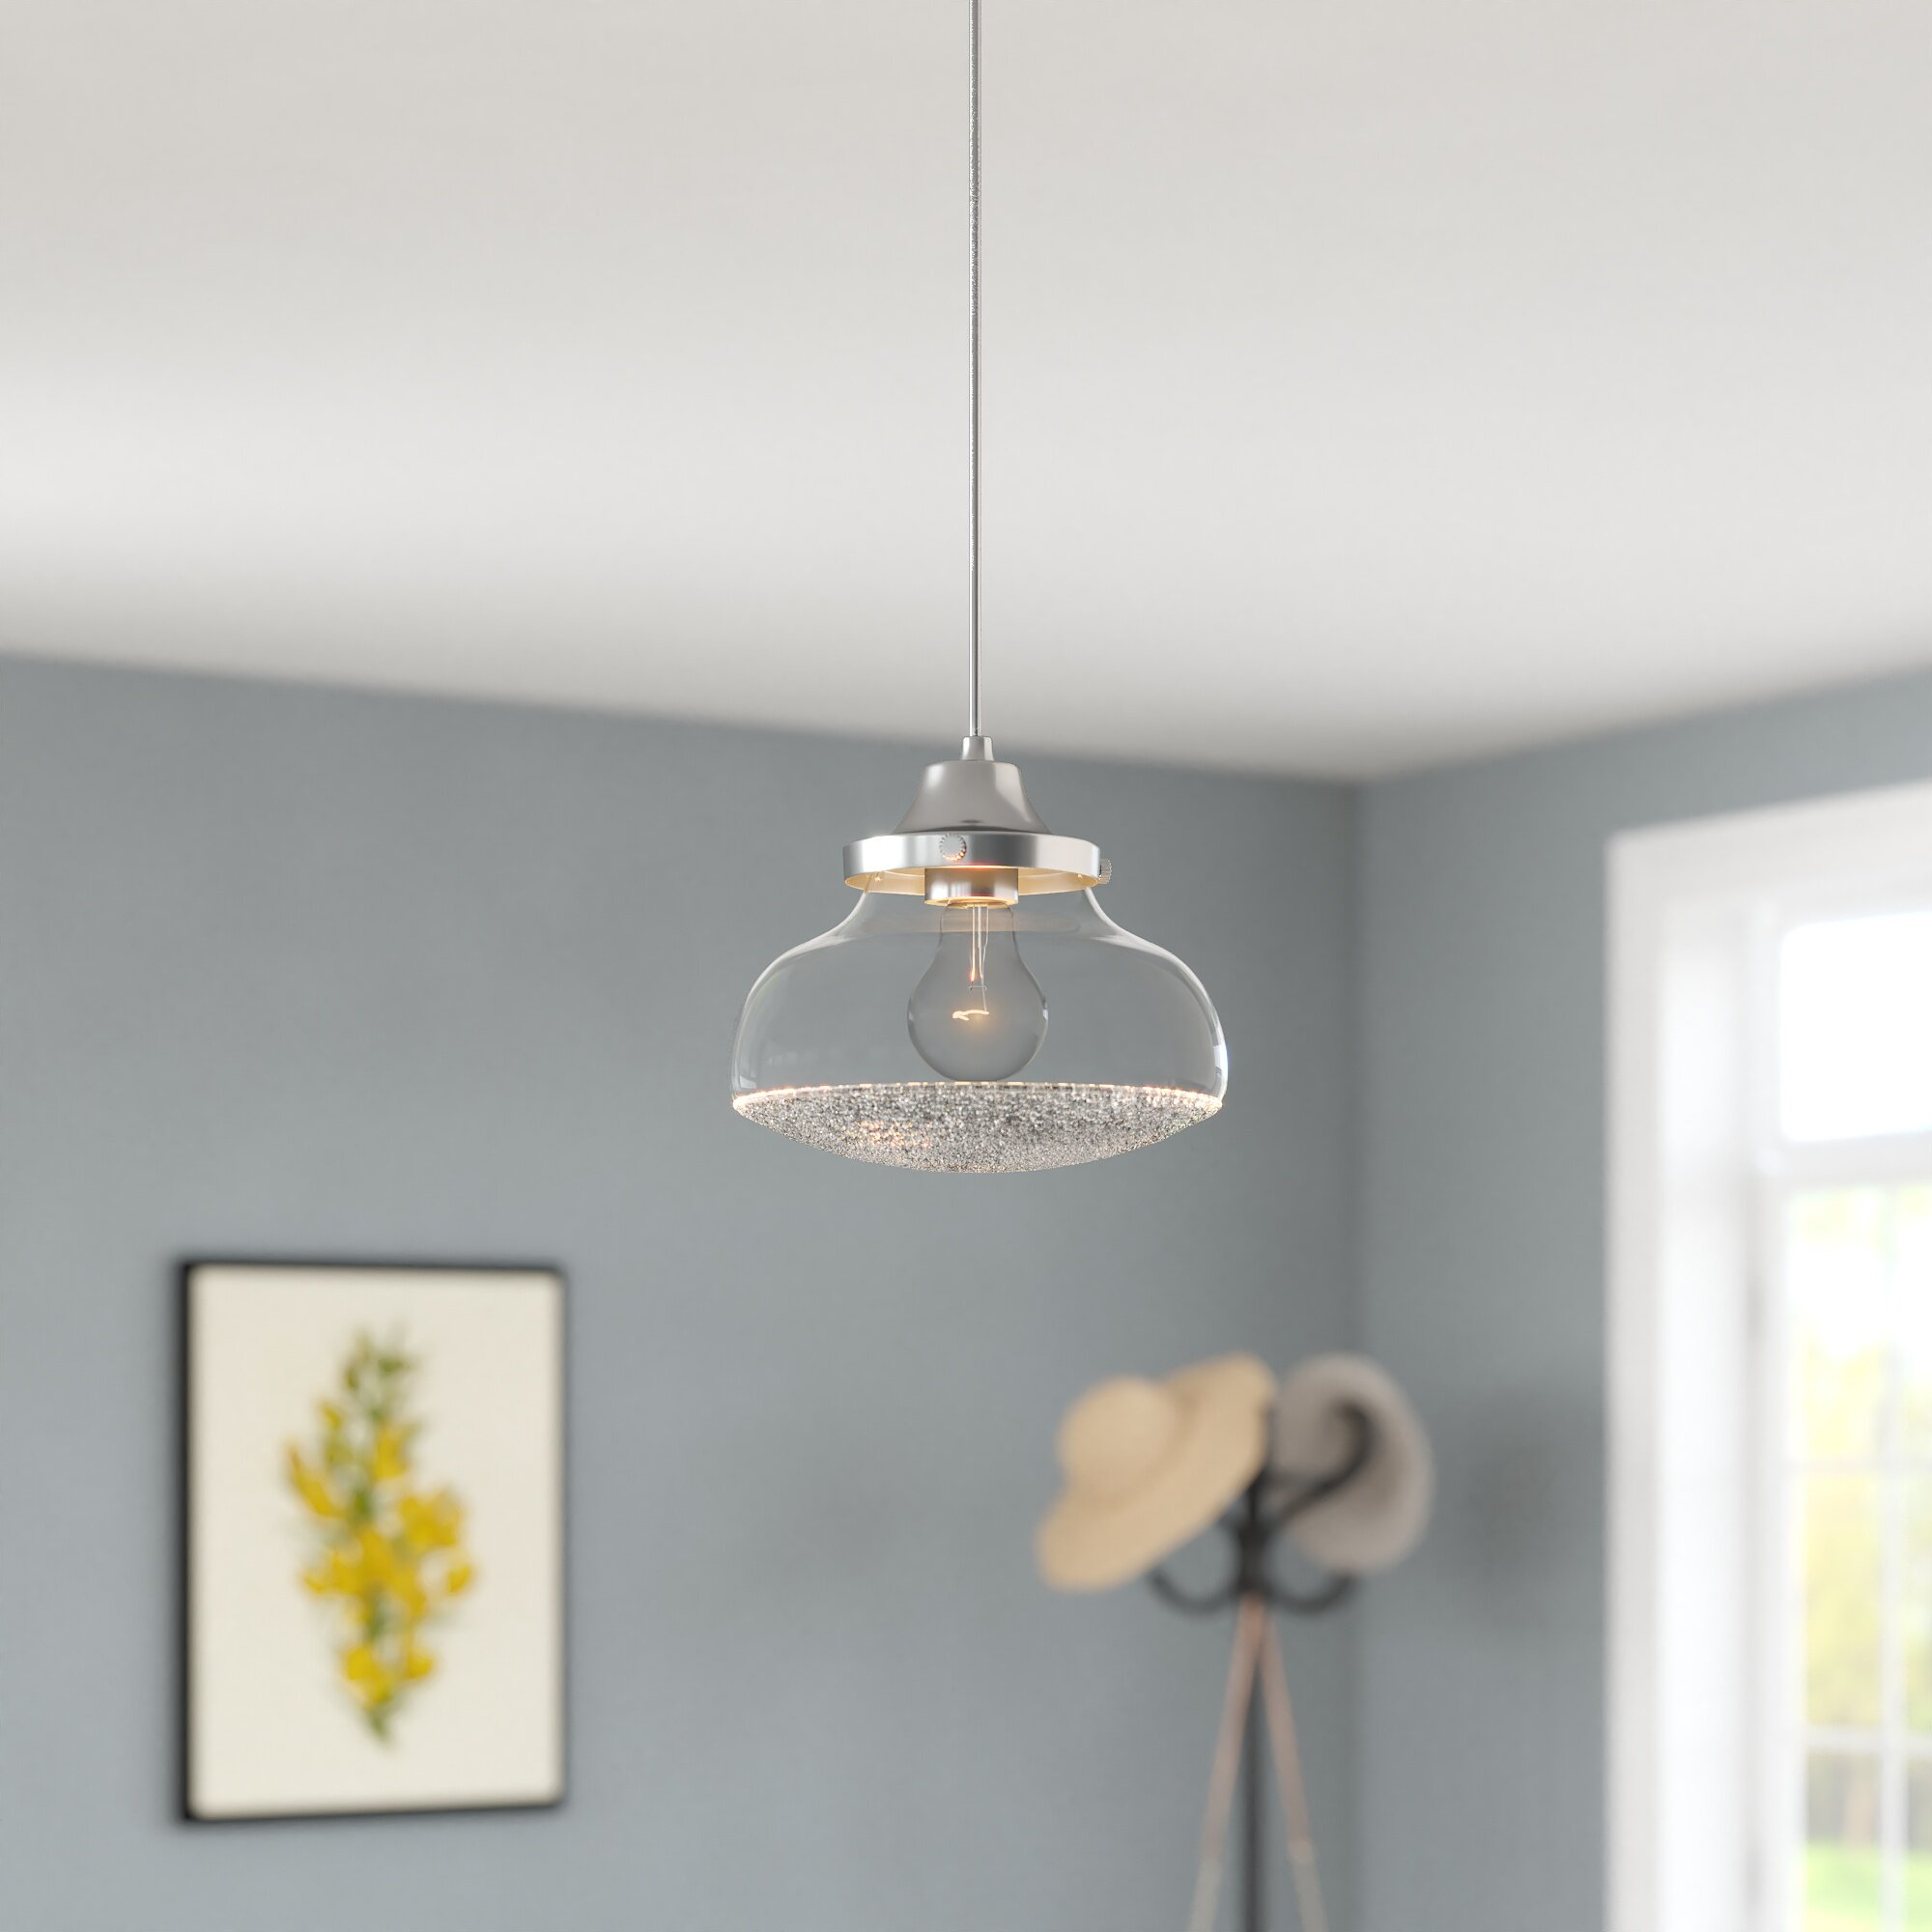 Ivy Bronx Pendant Lighting You'll Love In 2019 | Wayfair (Image 16 of 30)